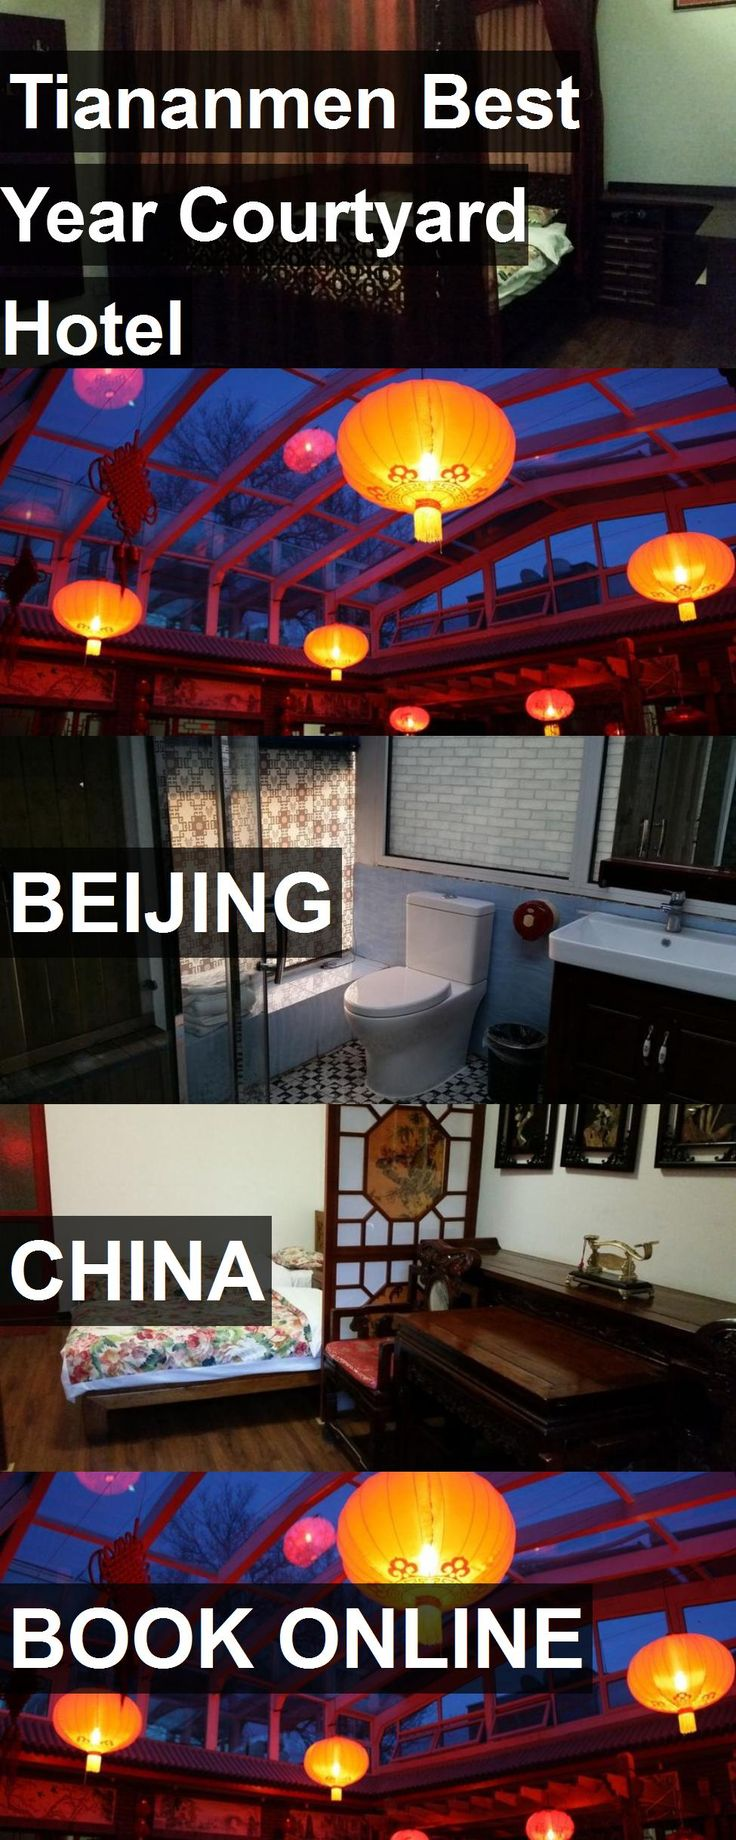 Tiananmen Best Year Courtyard Hotel in Beijing, China. For more information, photos, reviews and best prices please follow the link. #China #Beijing #travel #vacation #hotel